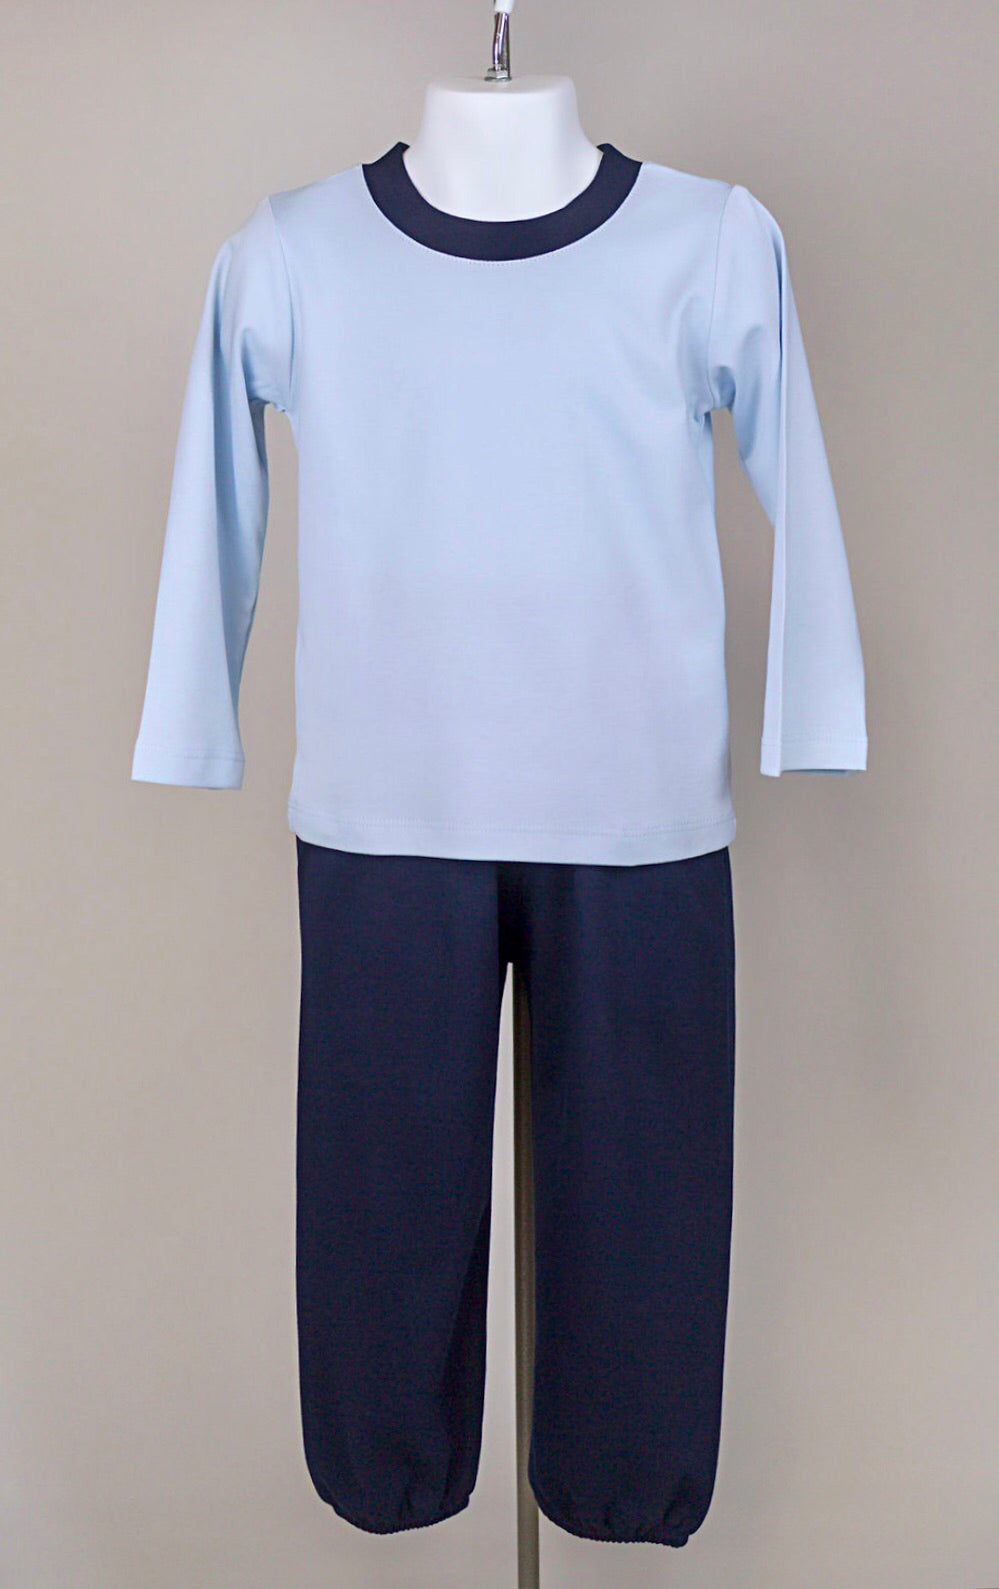 Pima crewneck lounge set - Blue/ navy